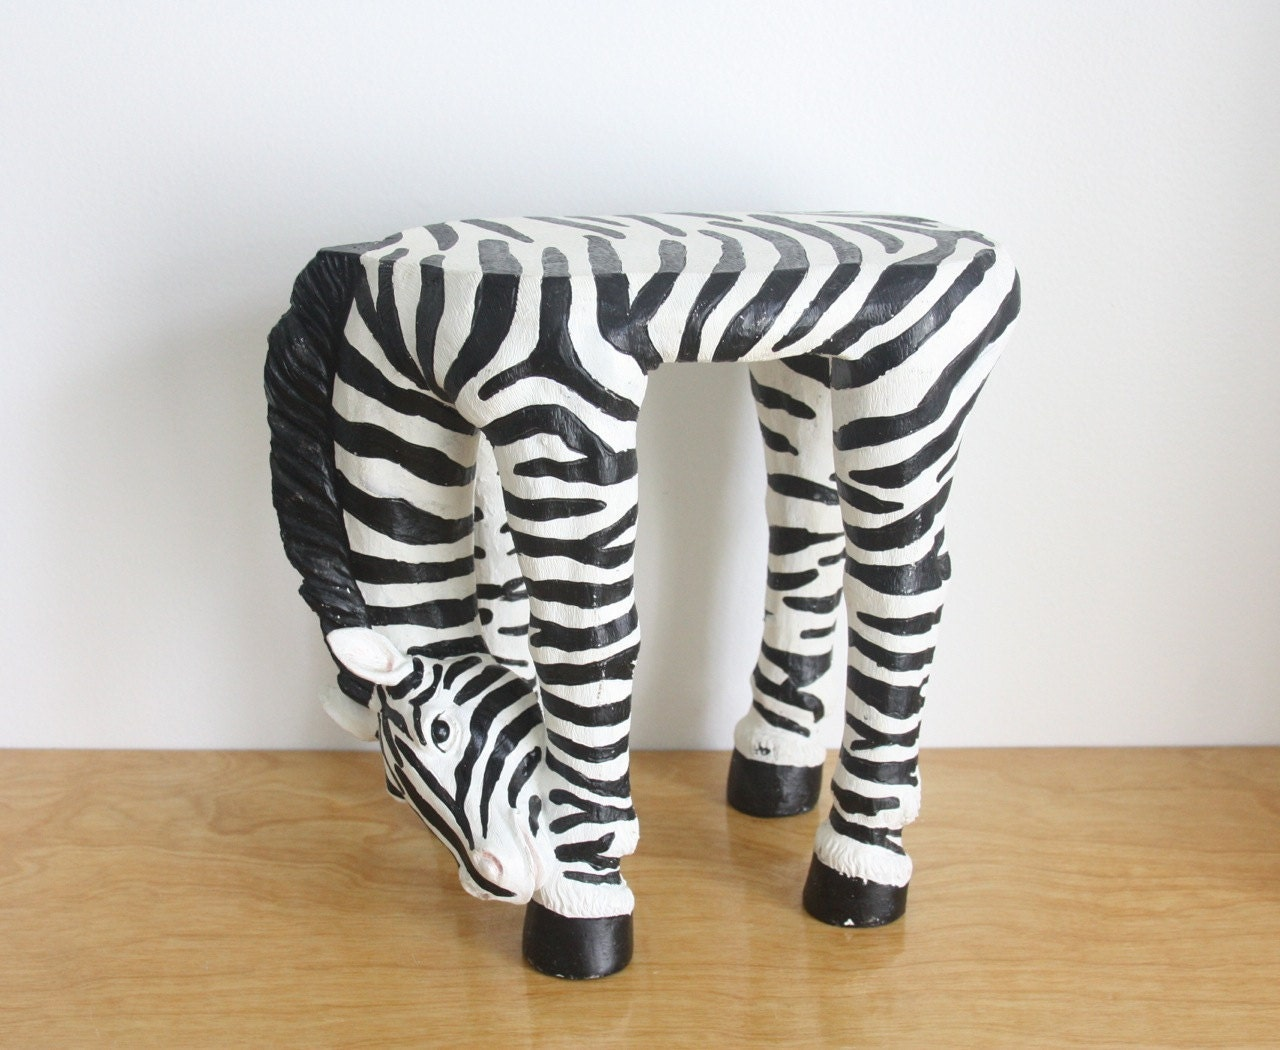 Vintage Zebra Stool Side Table